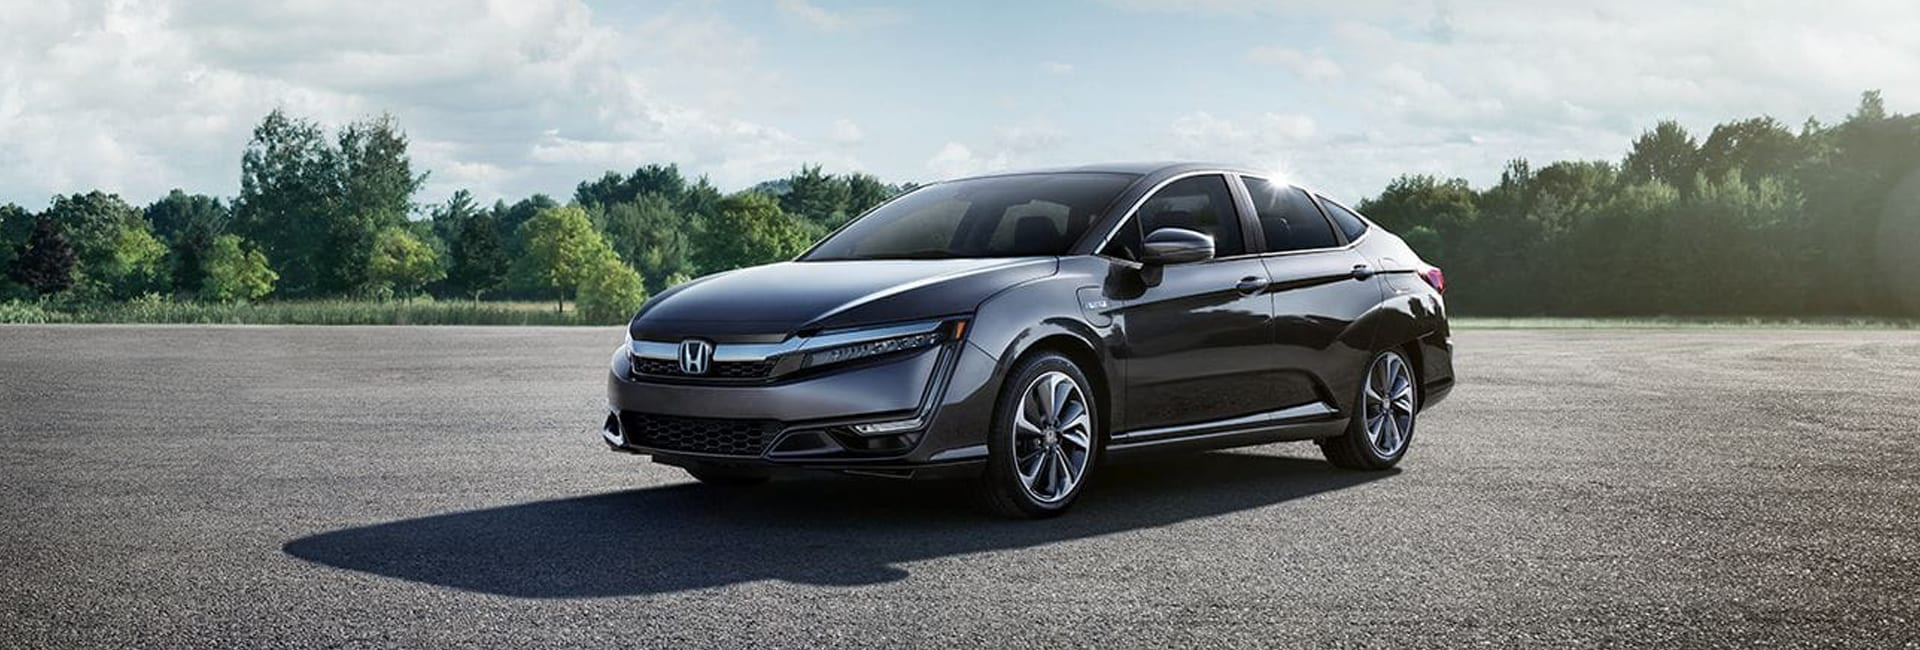 2018 Honda Clarity Exterior Features